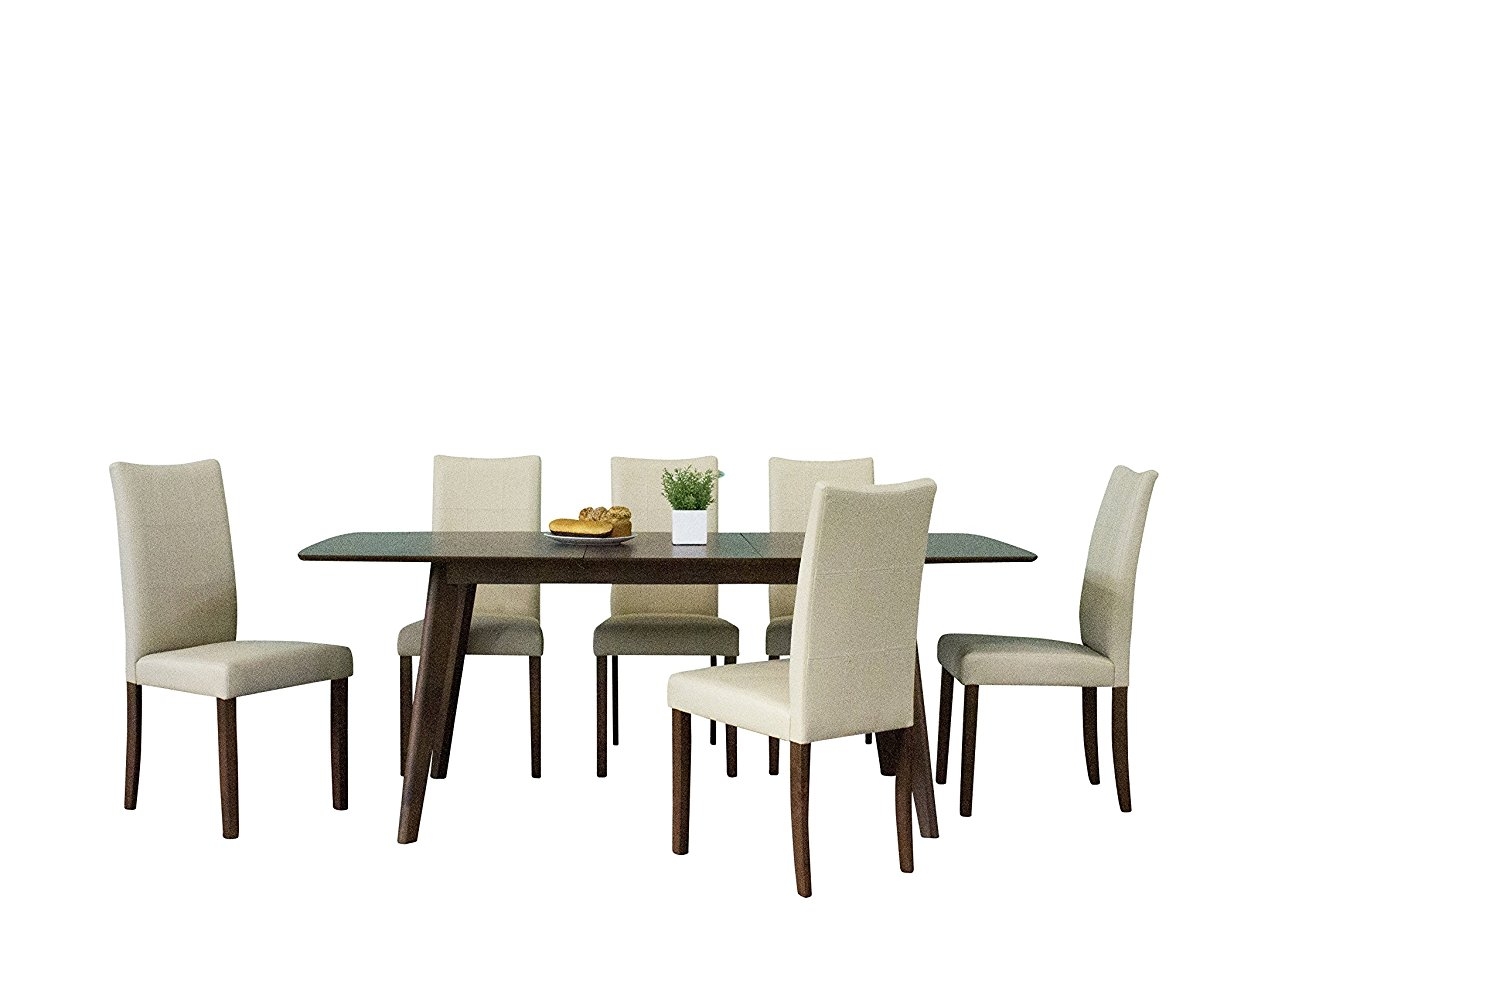 Midtown Concept Christine Mid-Century 7Piece Living Room Dining Set, Cream Leather